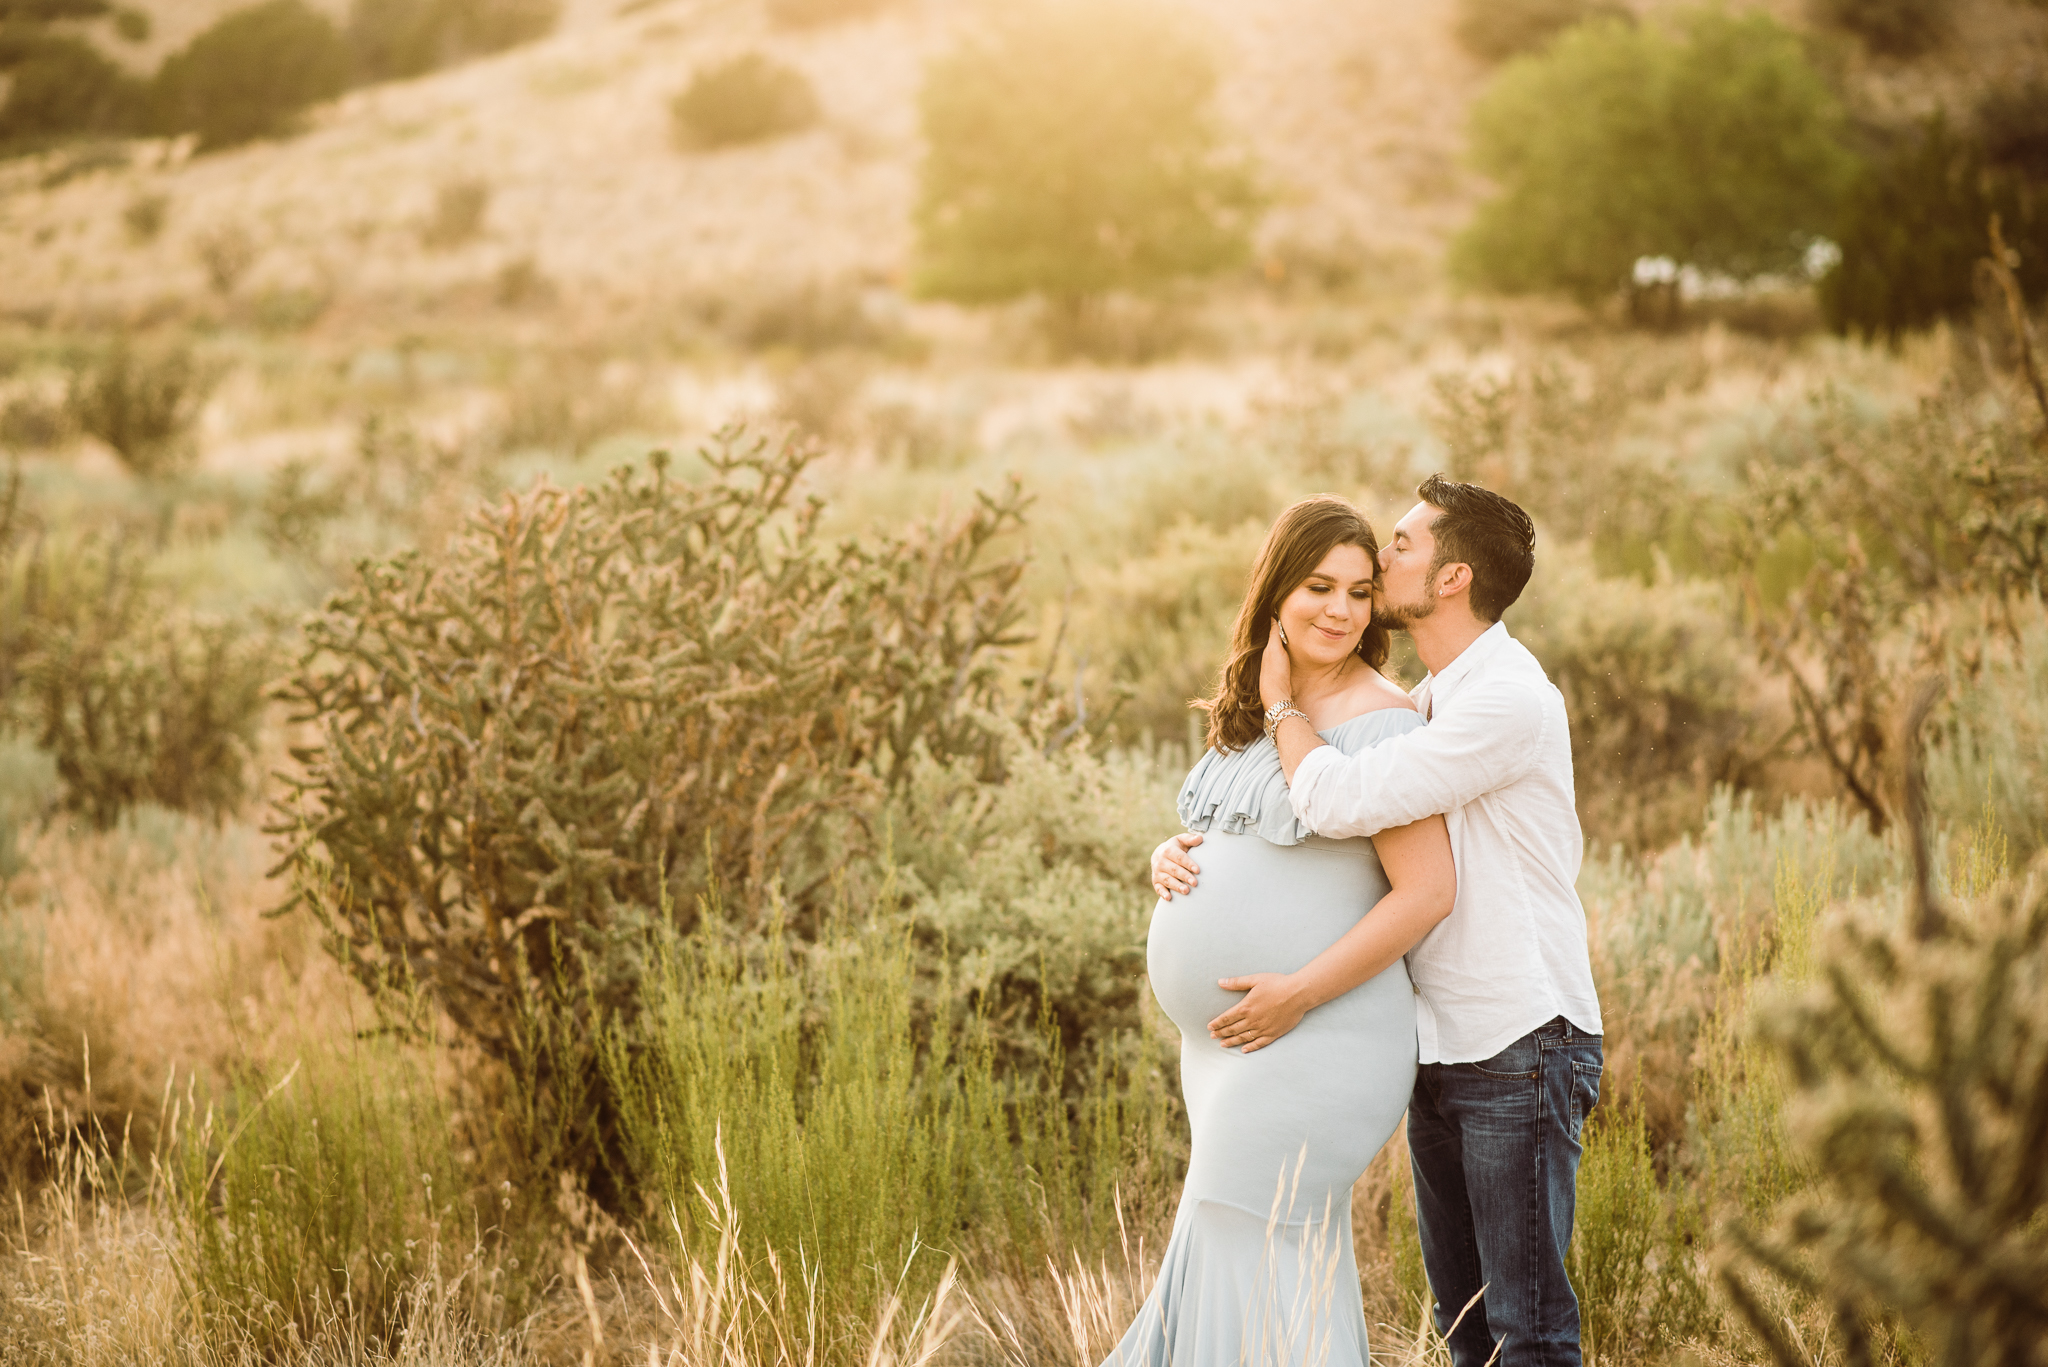 Albuquerque Maternity Photographer-22.jpg